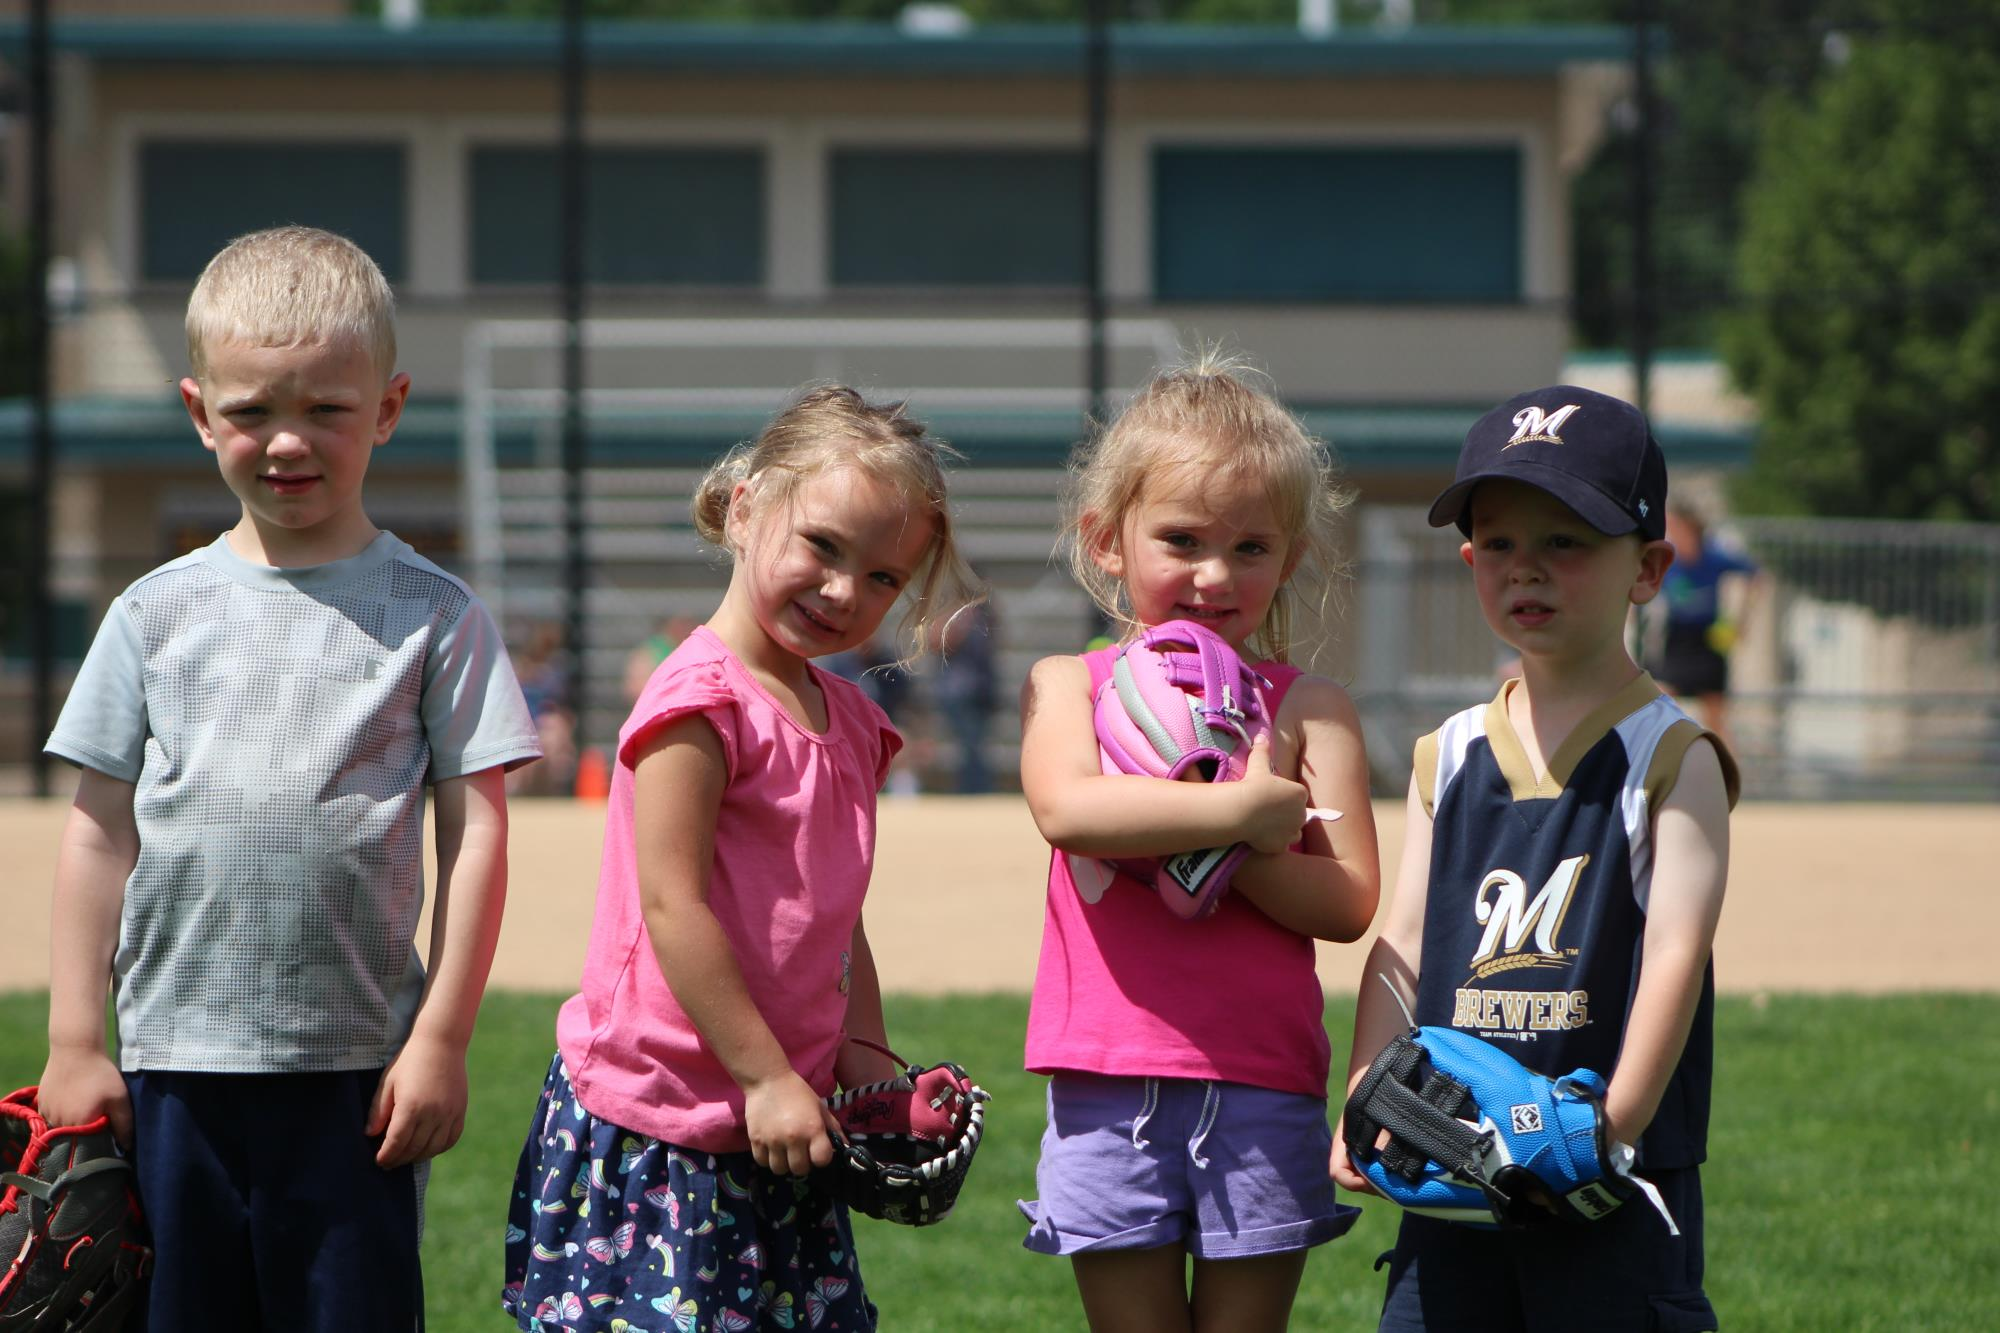 Tball group picture of small children at ballfield